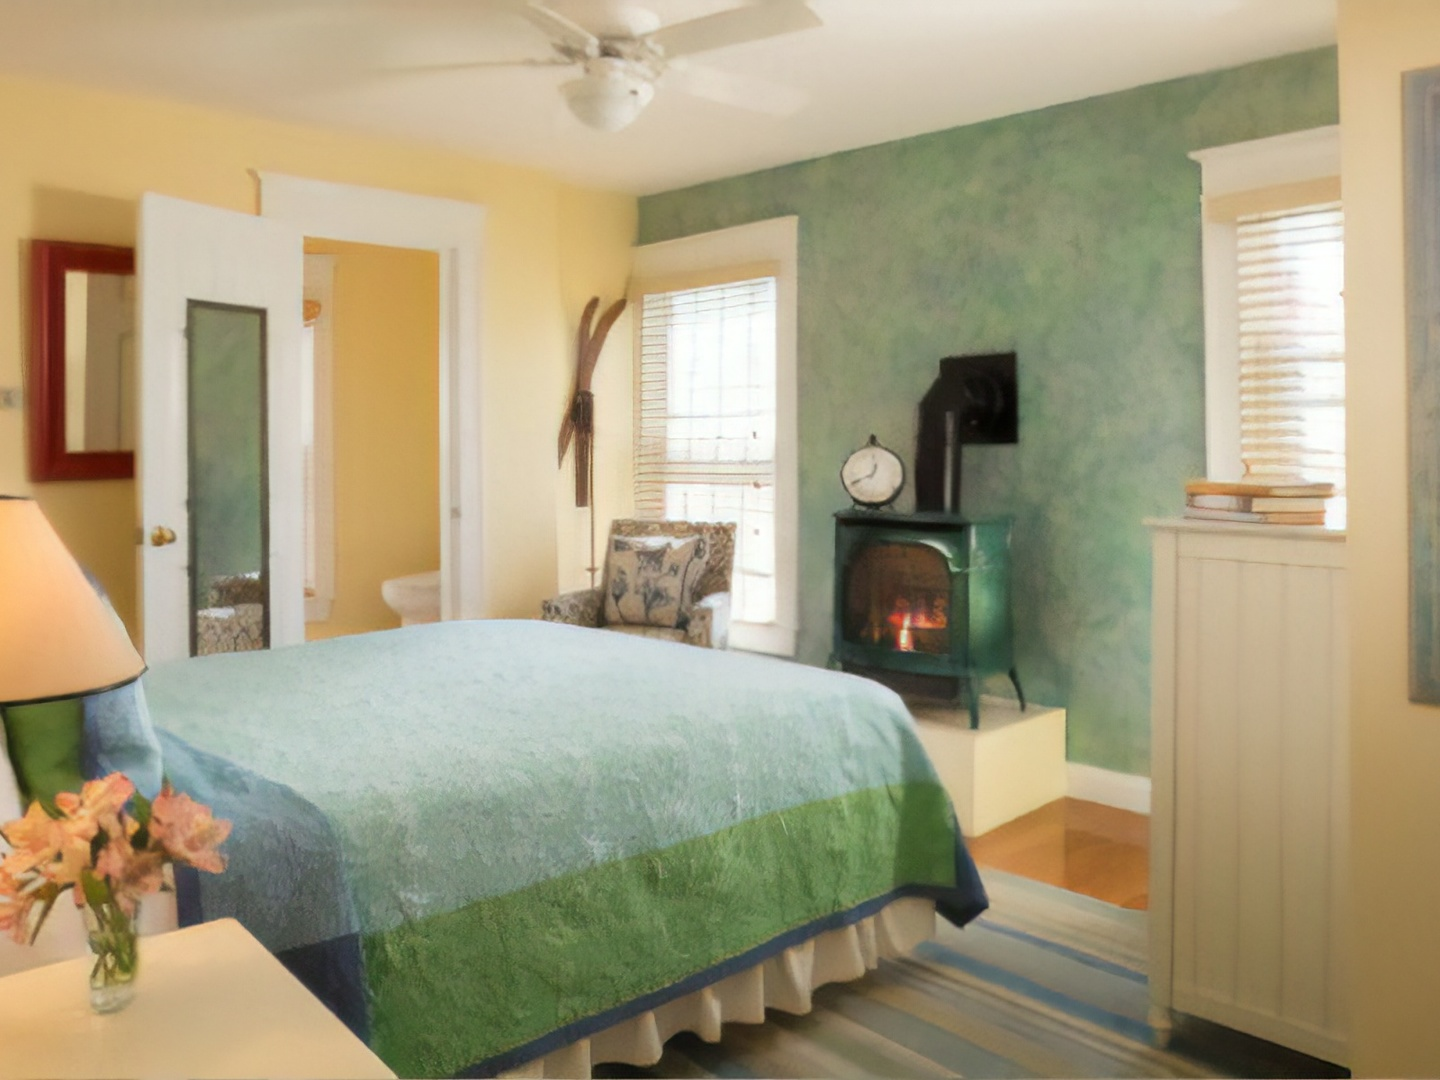 A bedroom with a large bed in a room at The Provincetown Hotel at Gabriel's.